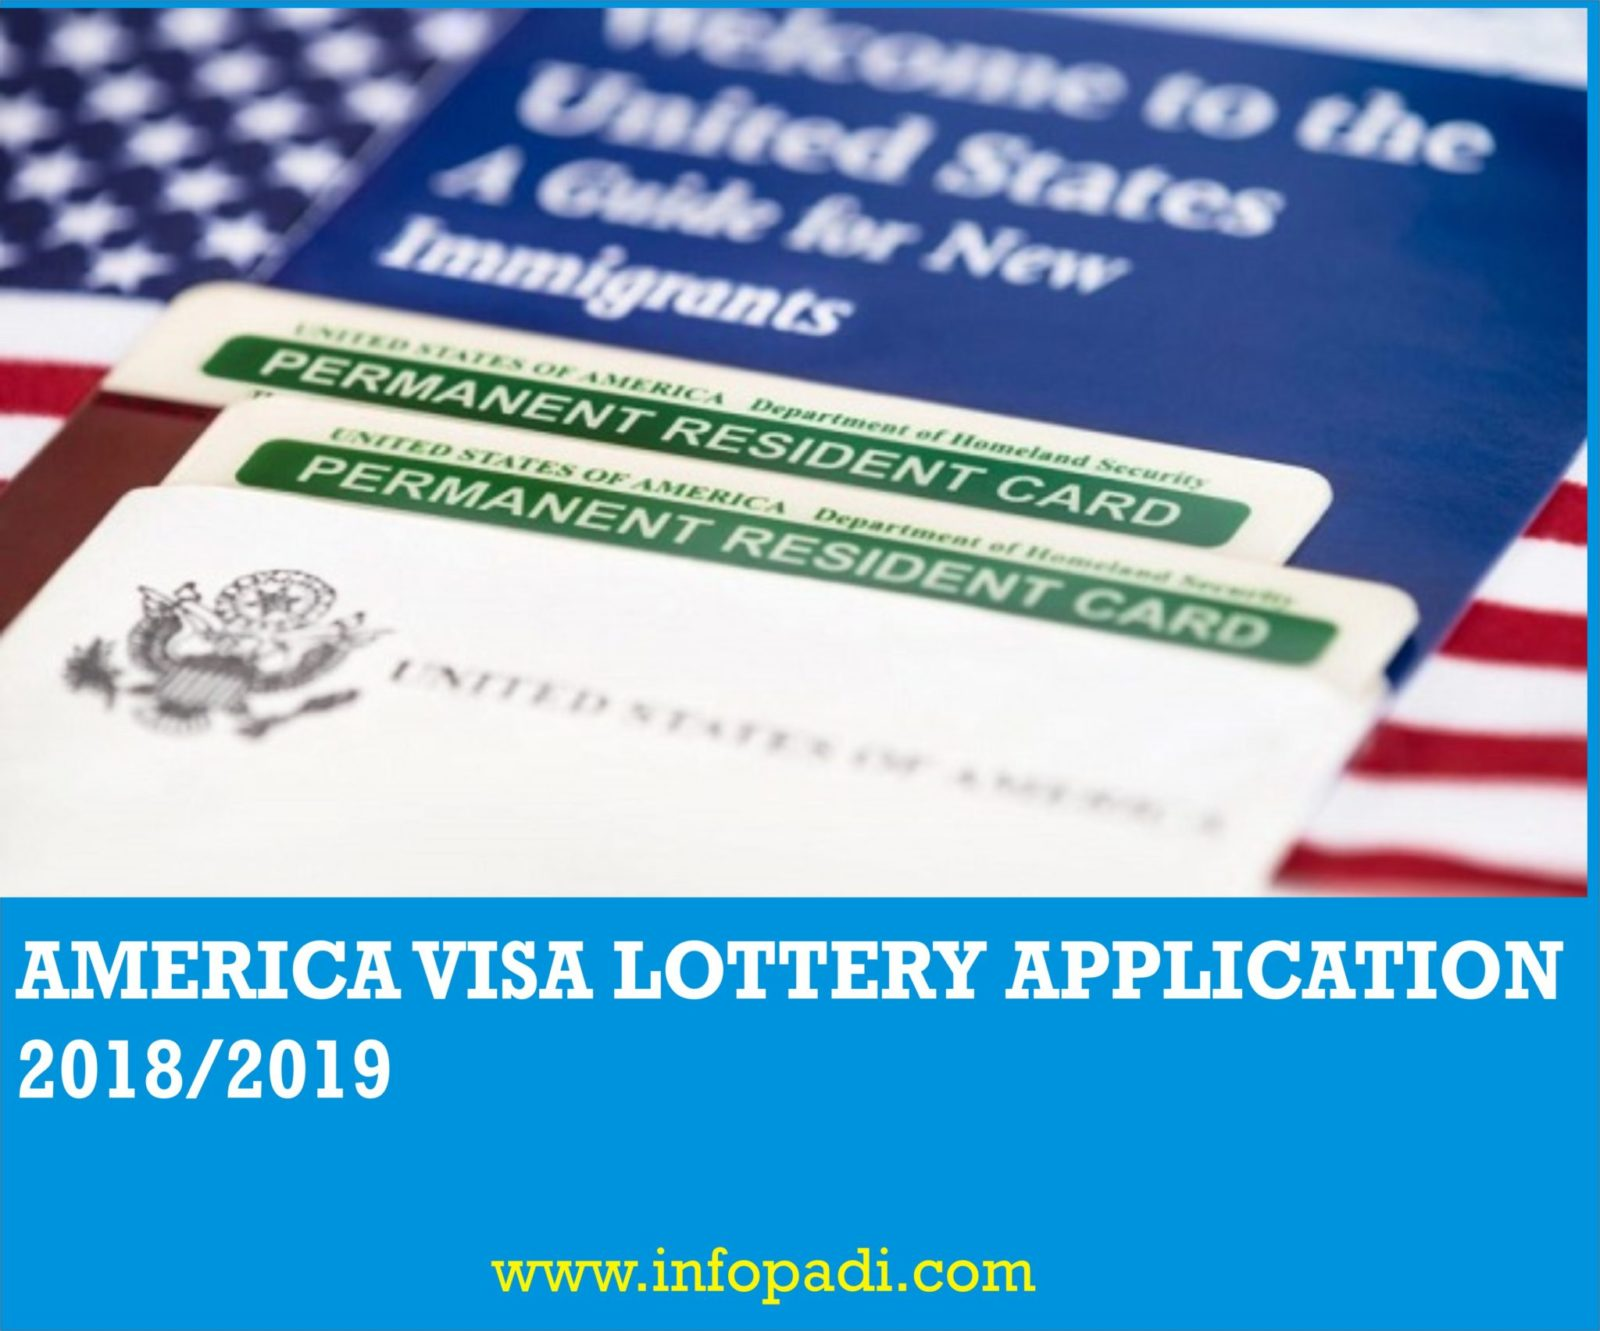 AMERICA VISA LOTTERY 2019 APPLICATION- Direct application link and how to apply